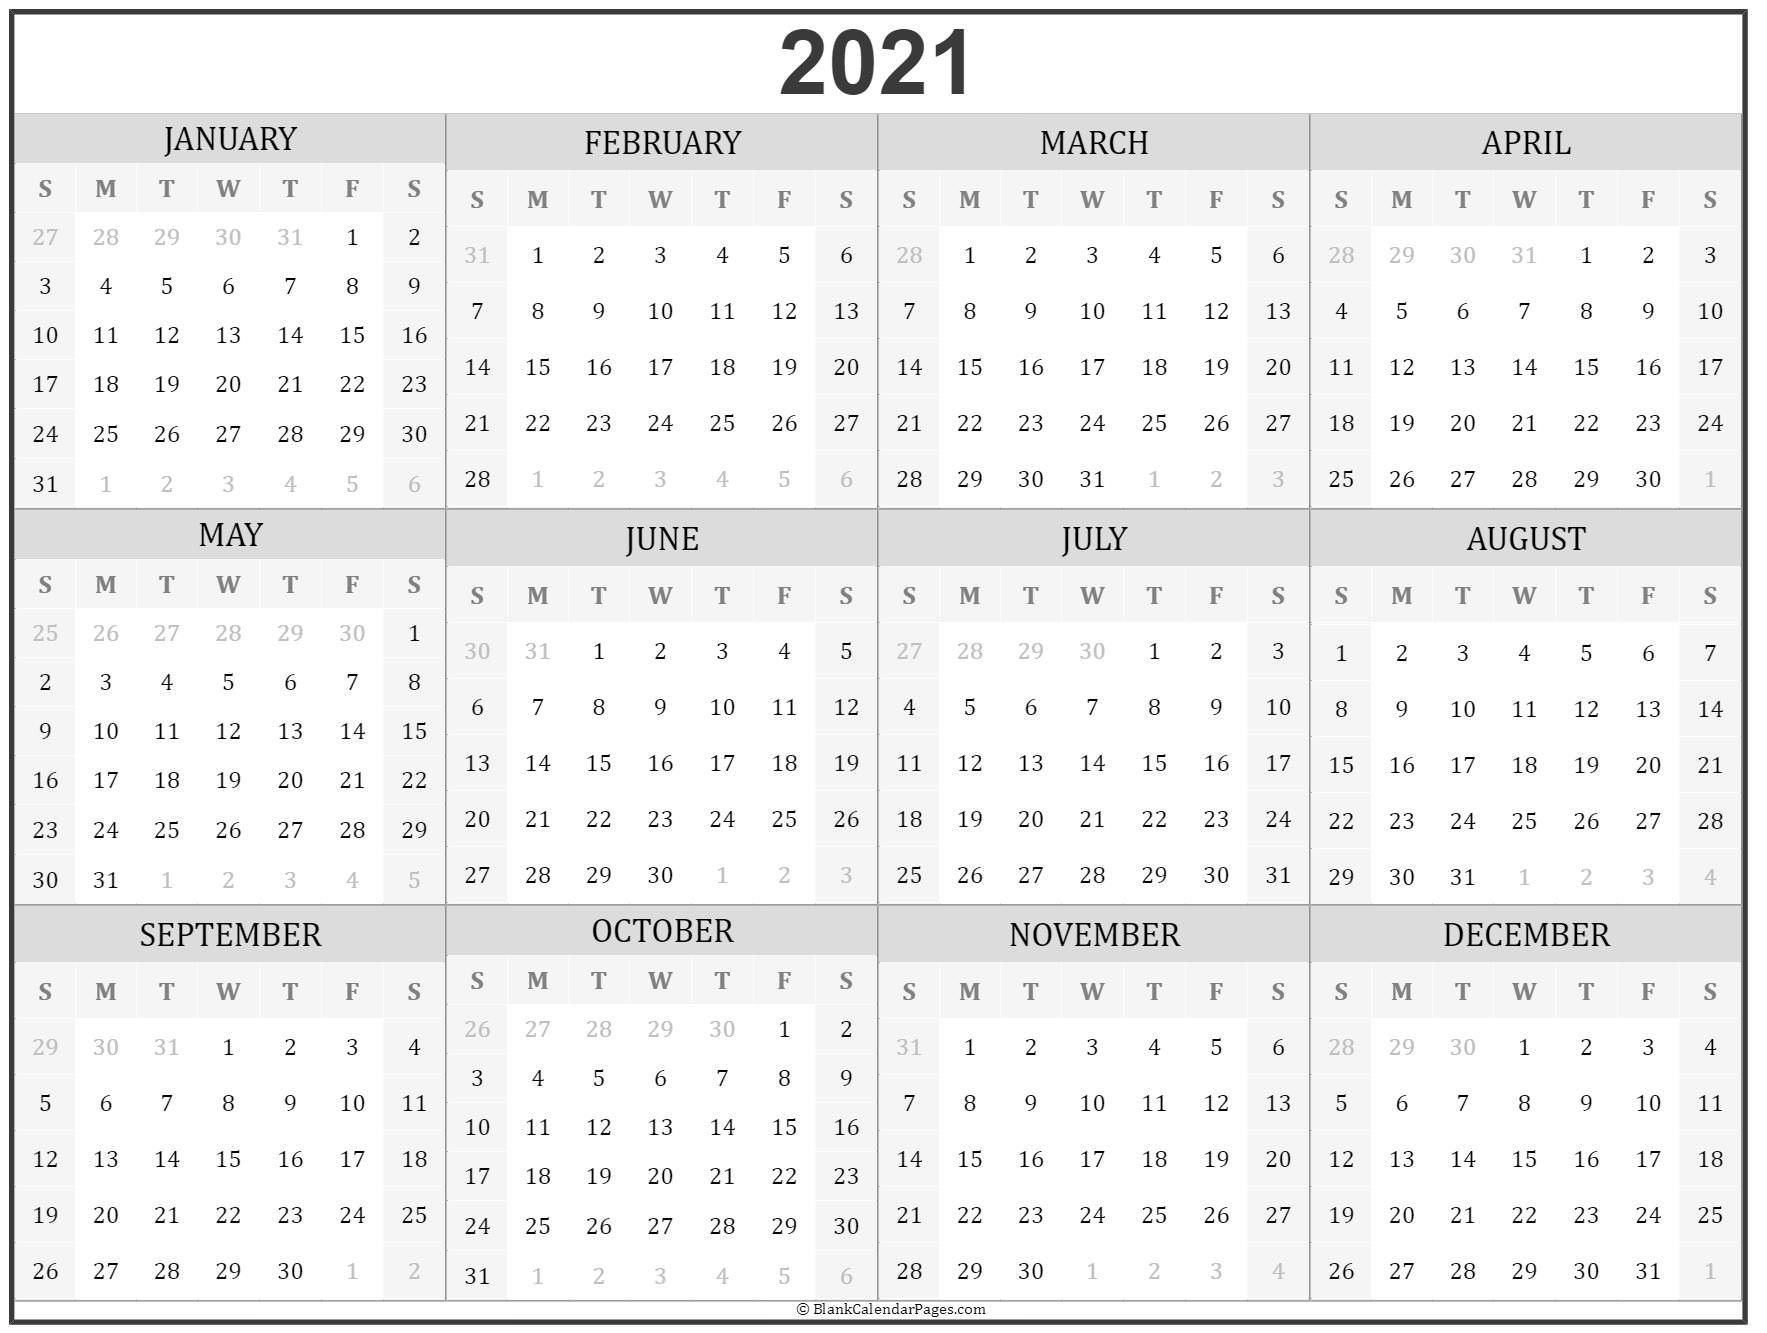 26/08/2020· free printable calendar 2021 if you want to style up your printable calendar to look really stunning, then check out our calendar style guide below for a perfect finish! Microsoft Calendar Templates 2021 2 Page Per Month ...